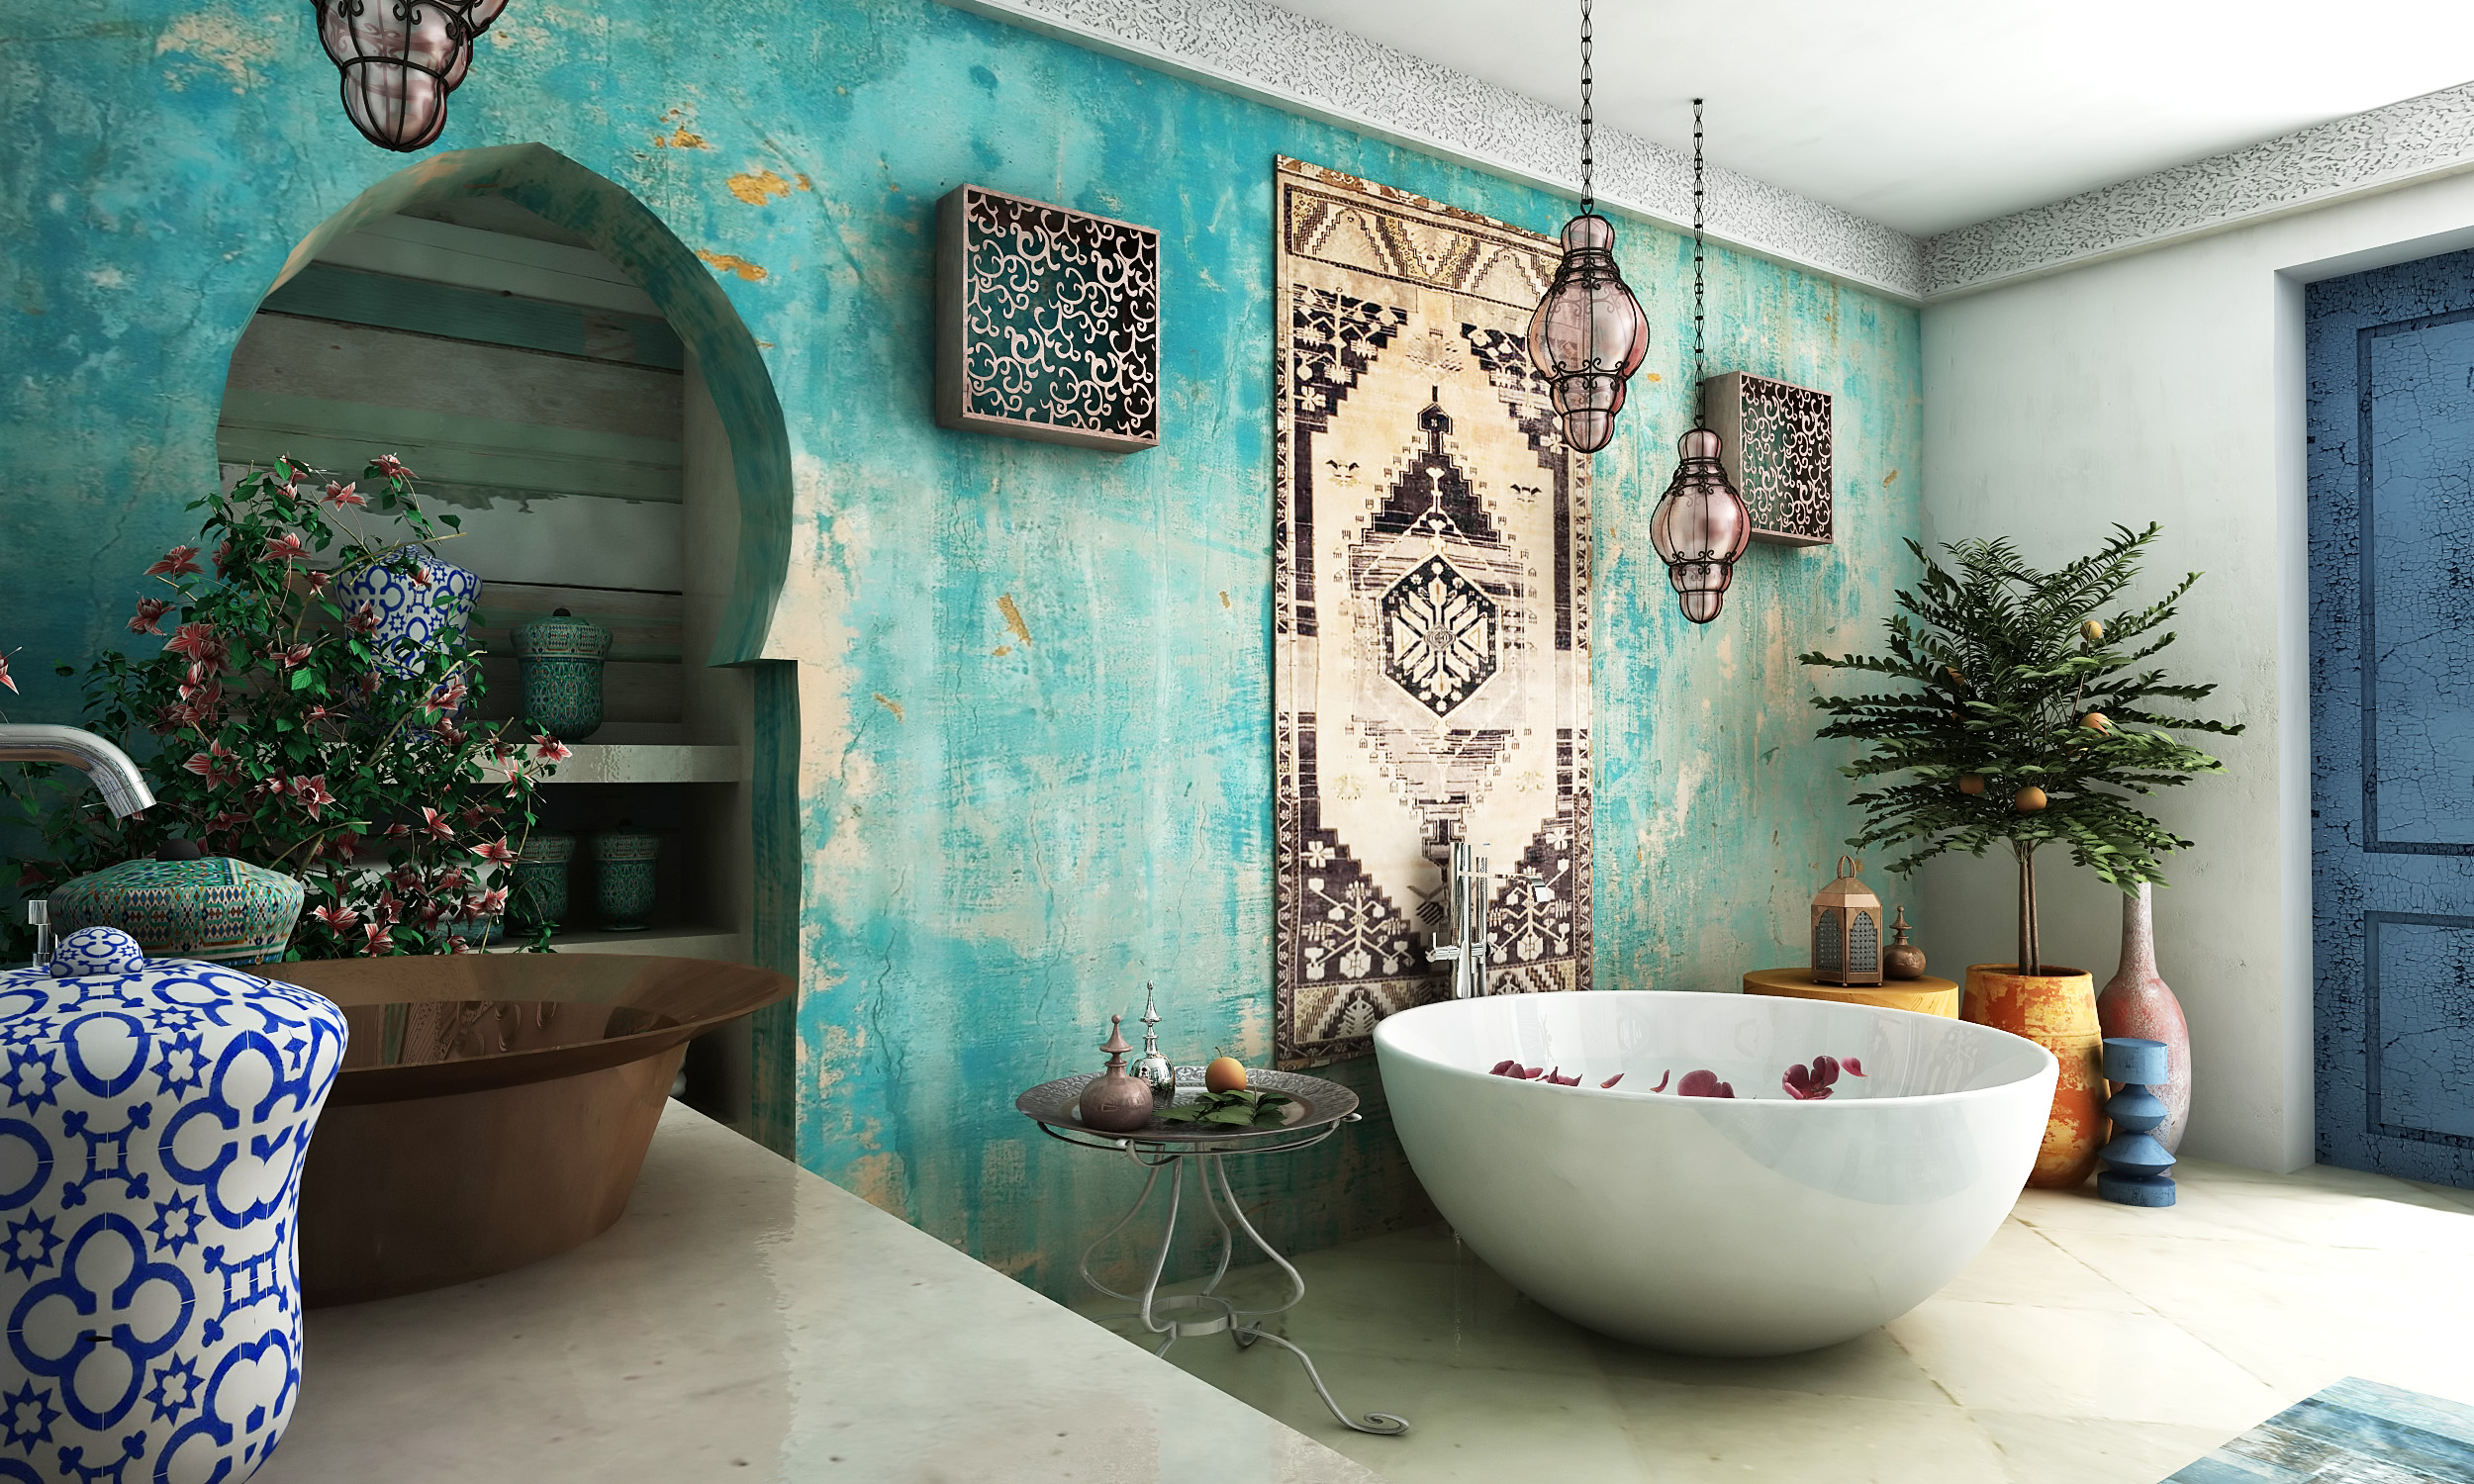 Awesome Salle De Bain Inspiration Orientale Gallery - Amazing ...